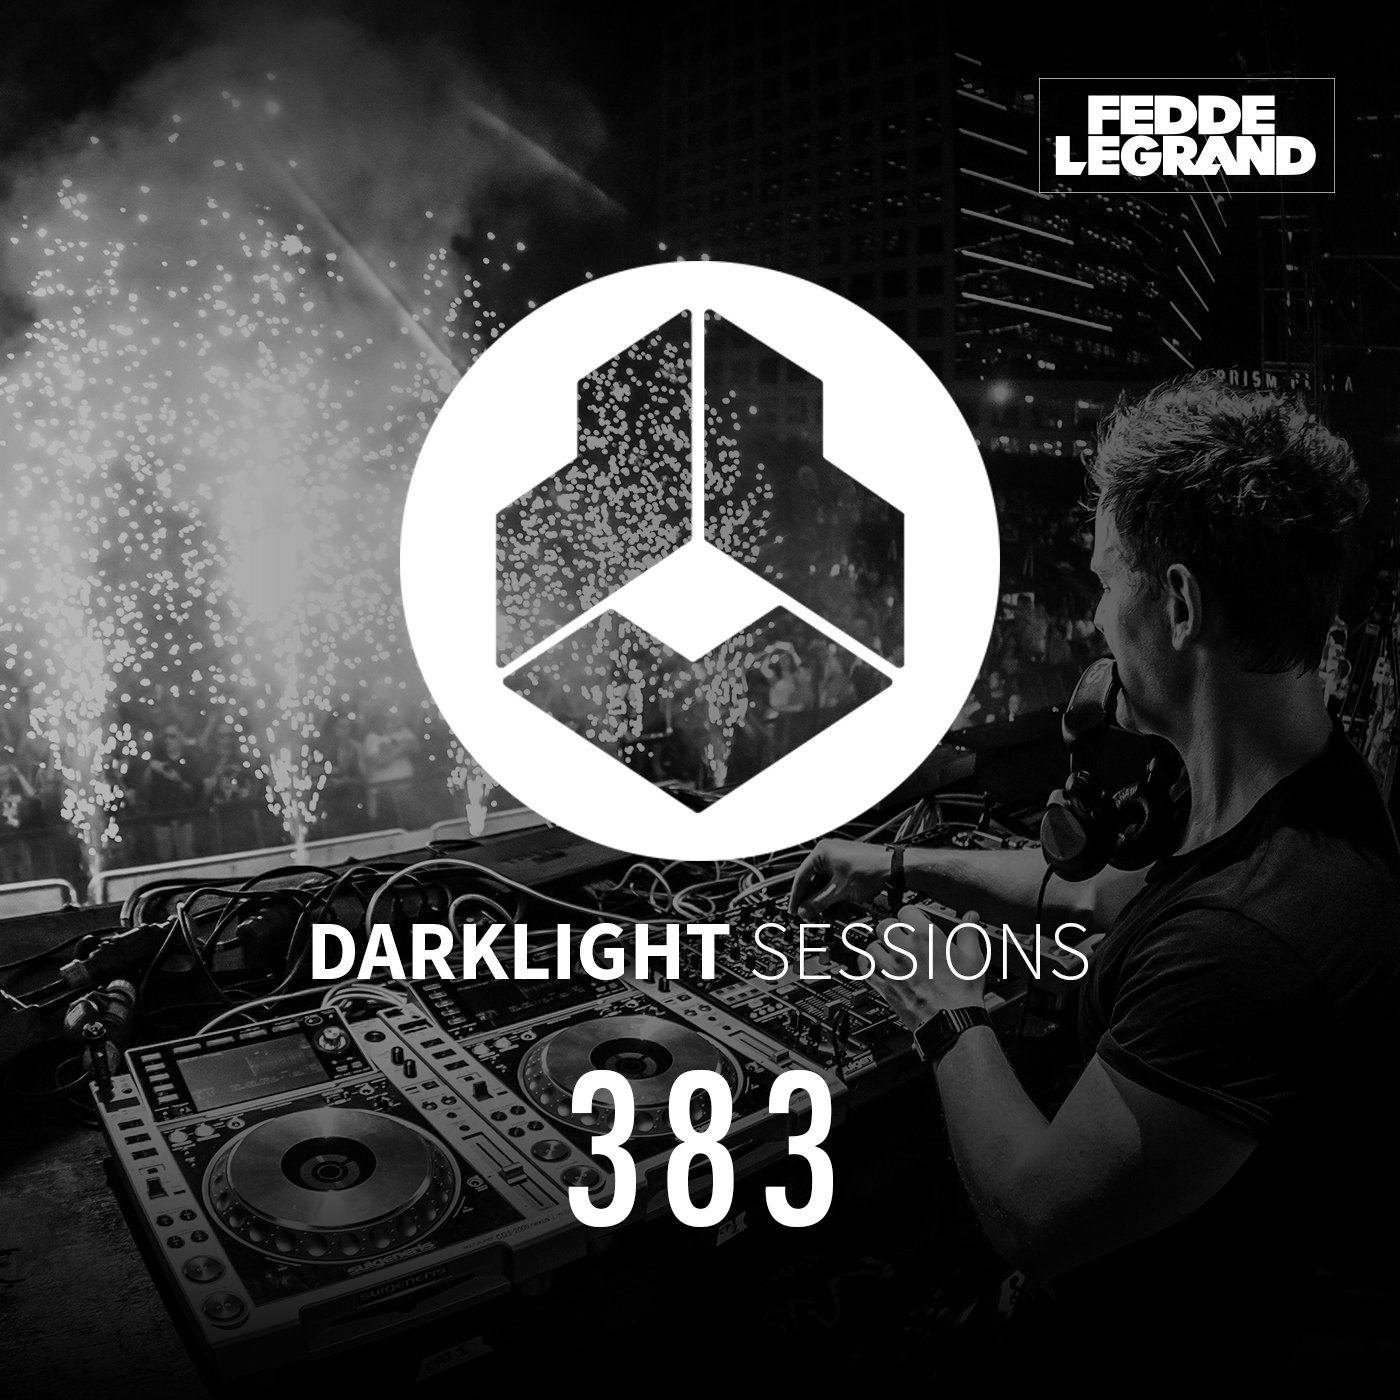 Darklight Sessions 383